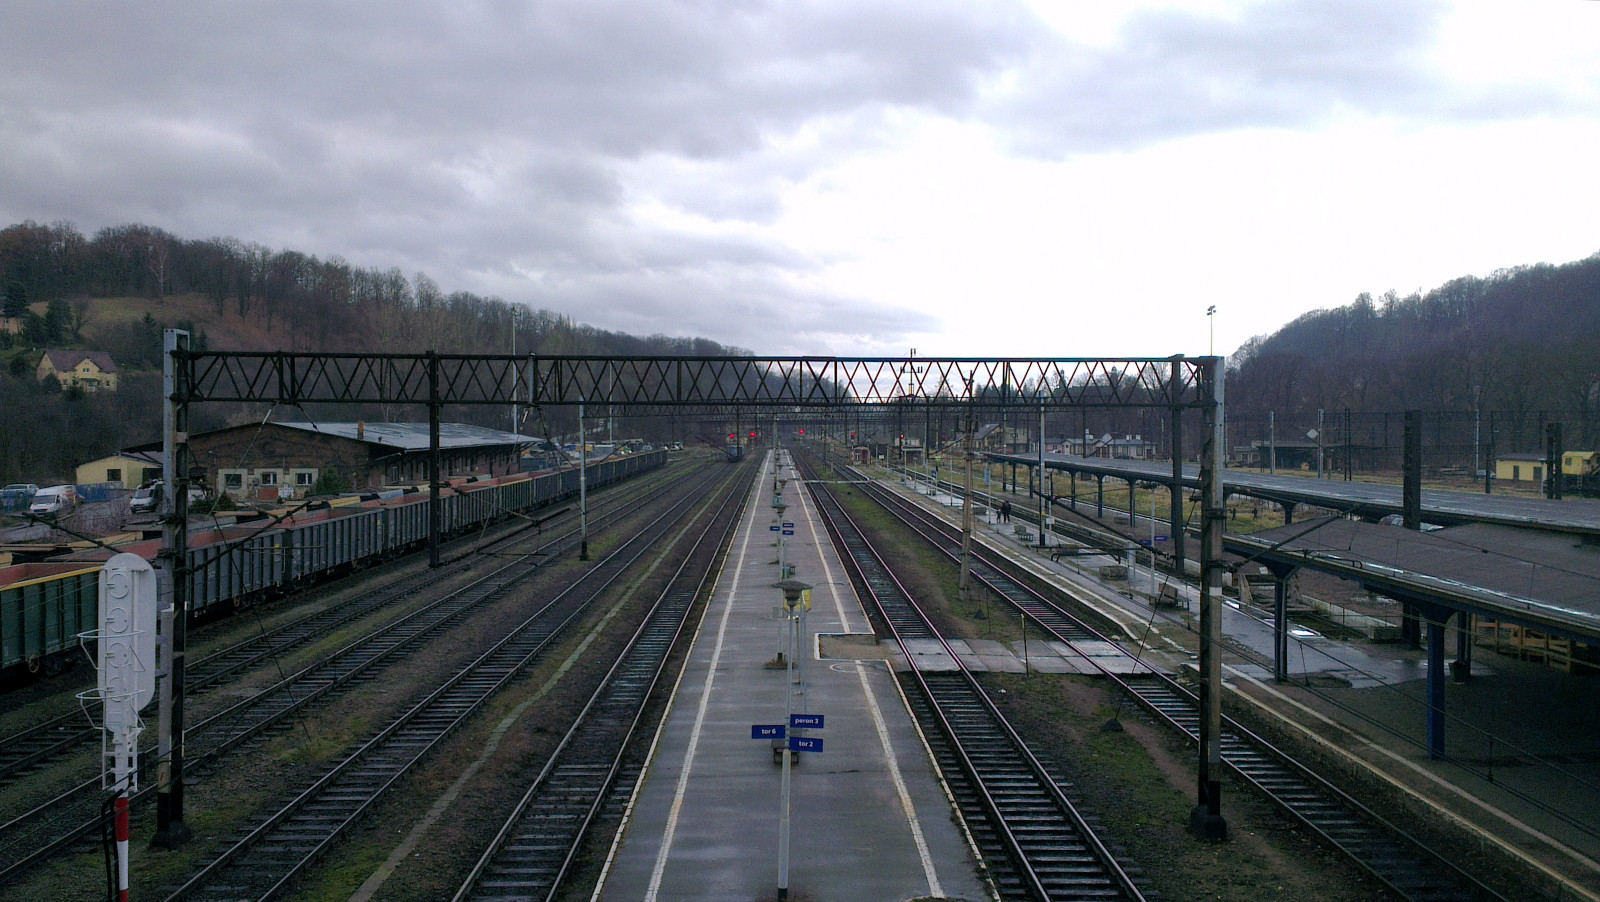 Looking north over the rail yard